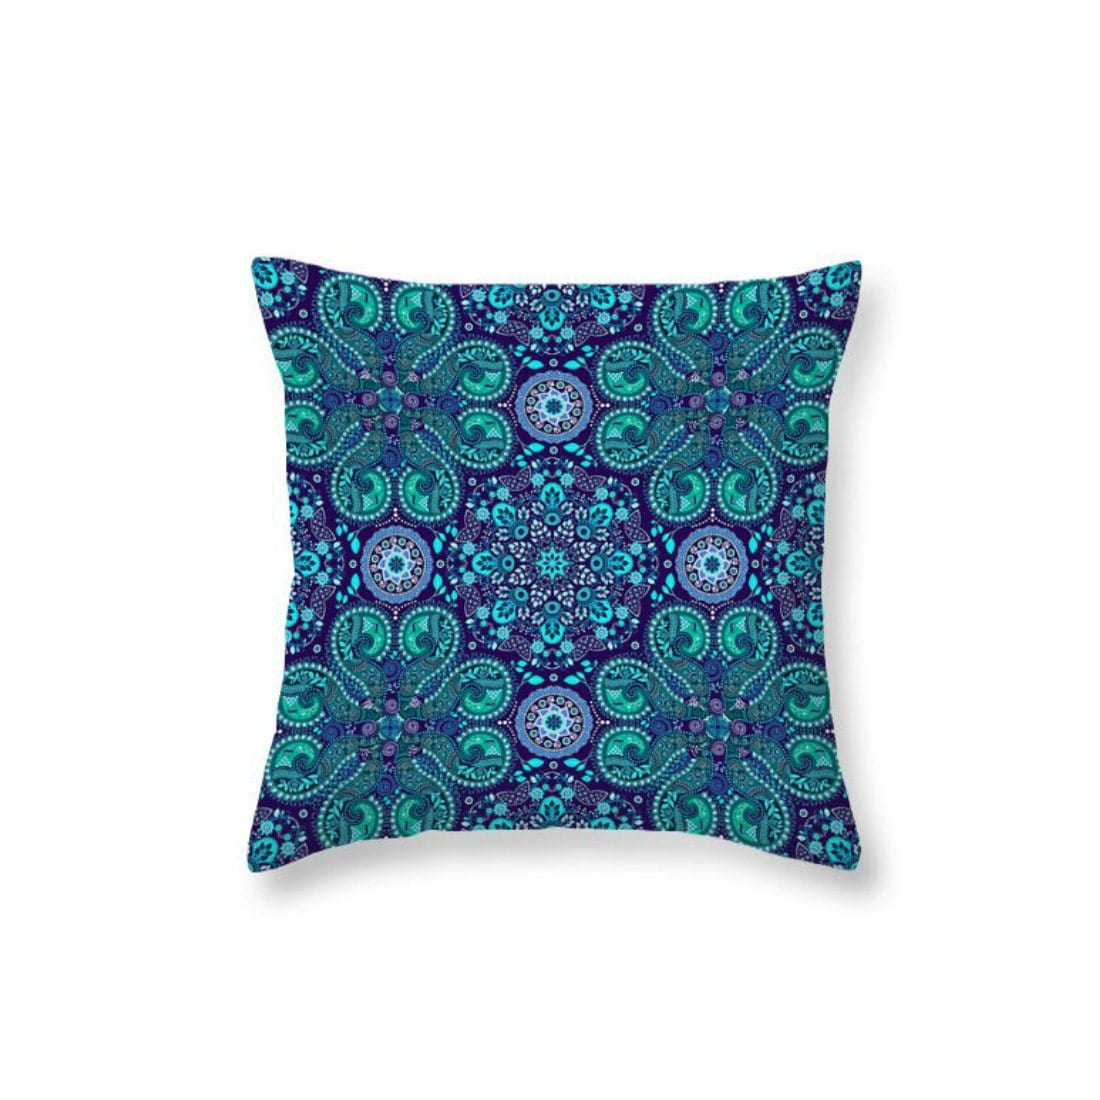 Boho Style Throw Pillows : Throw Pillow Boho Chic Purple Teal Mandala Lace by FolkandFunky